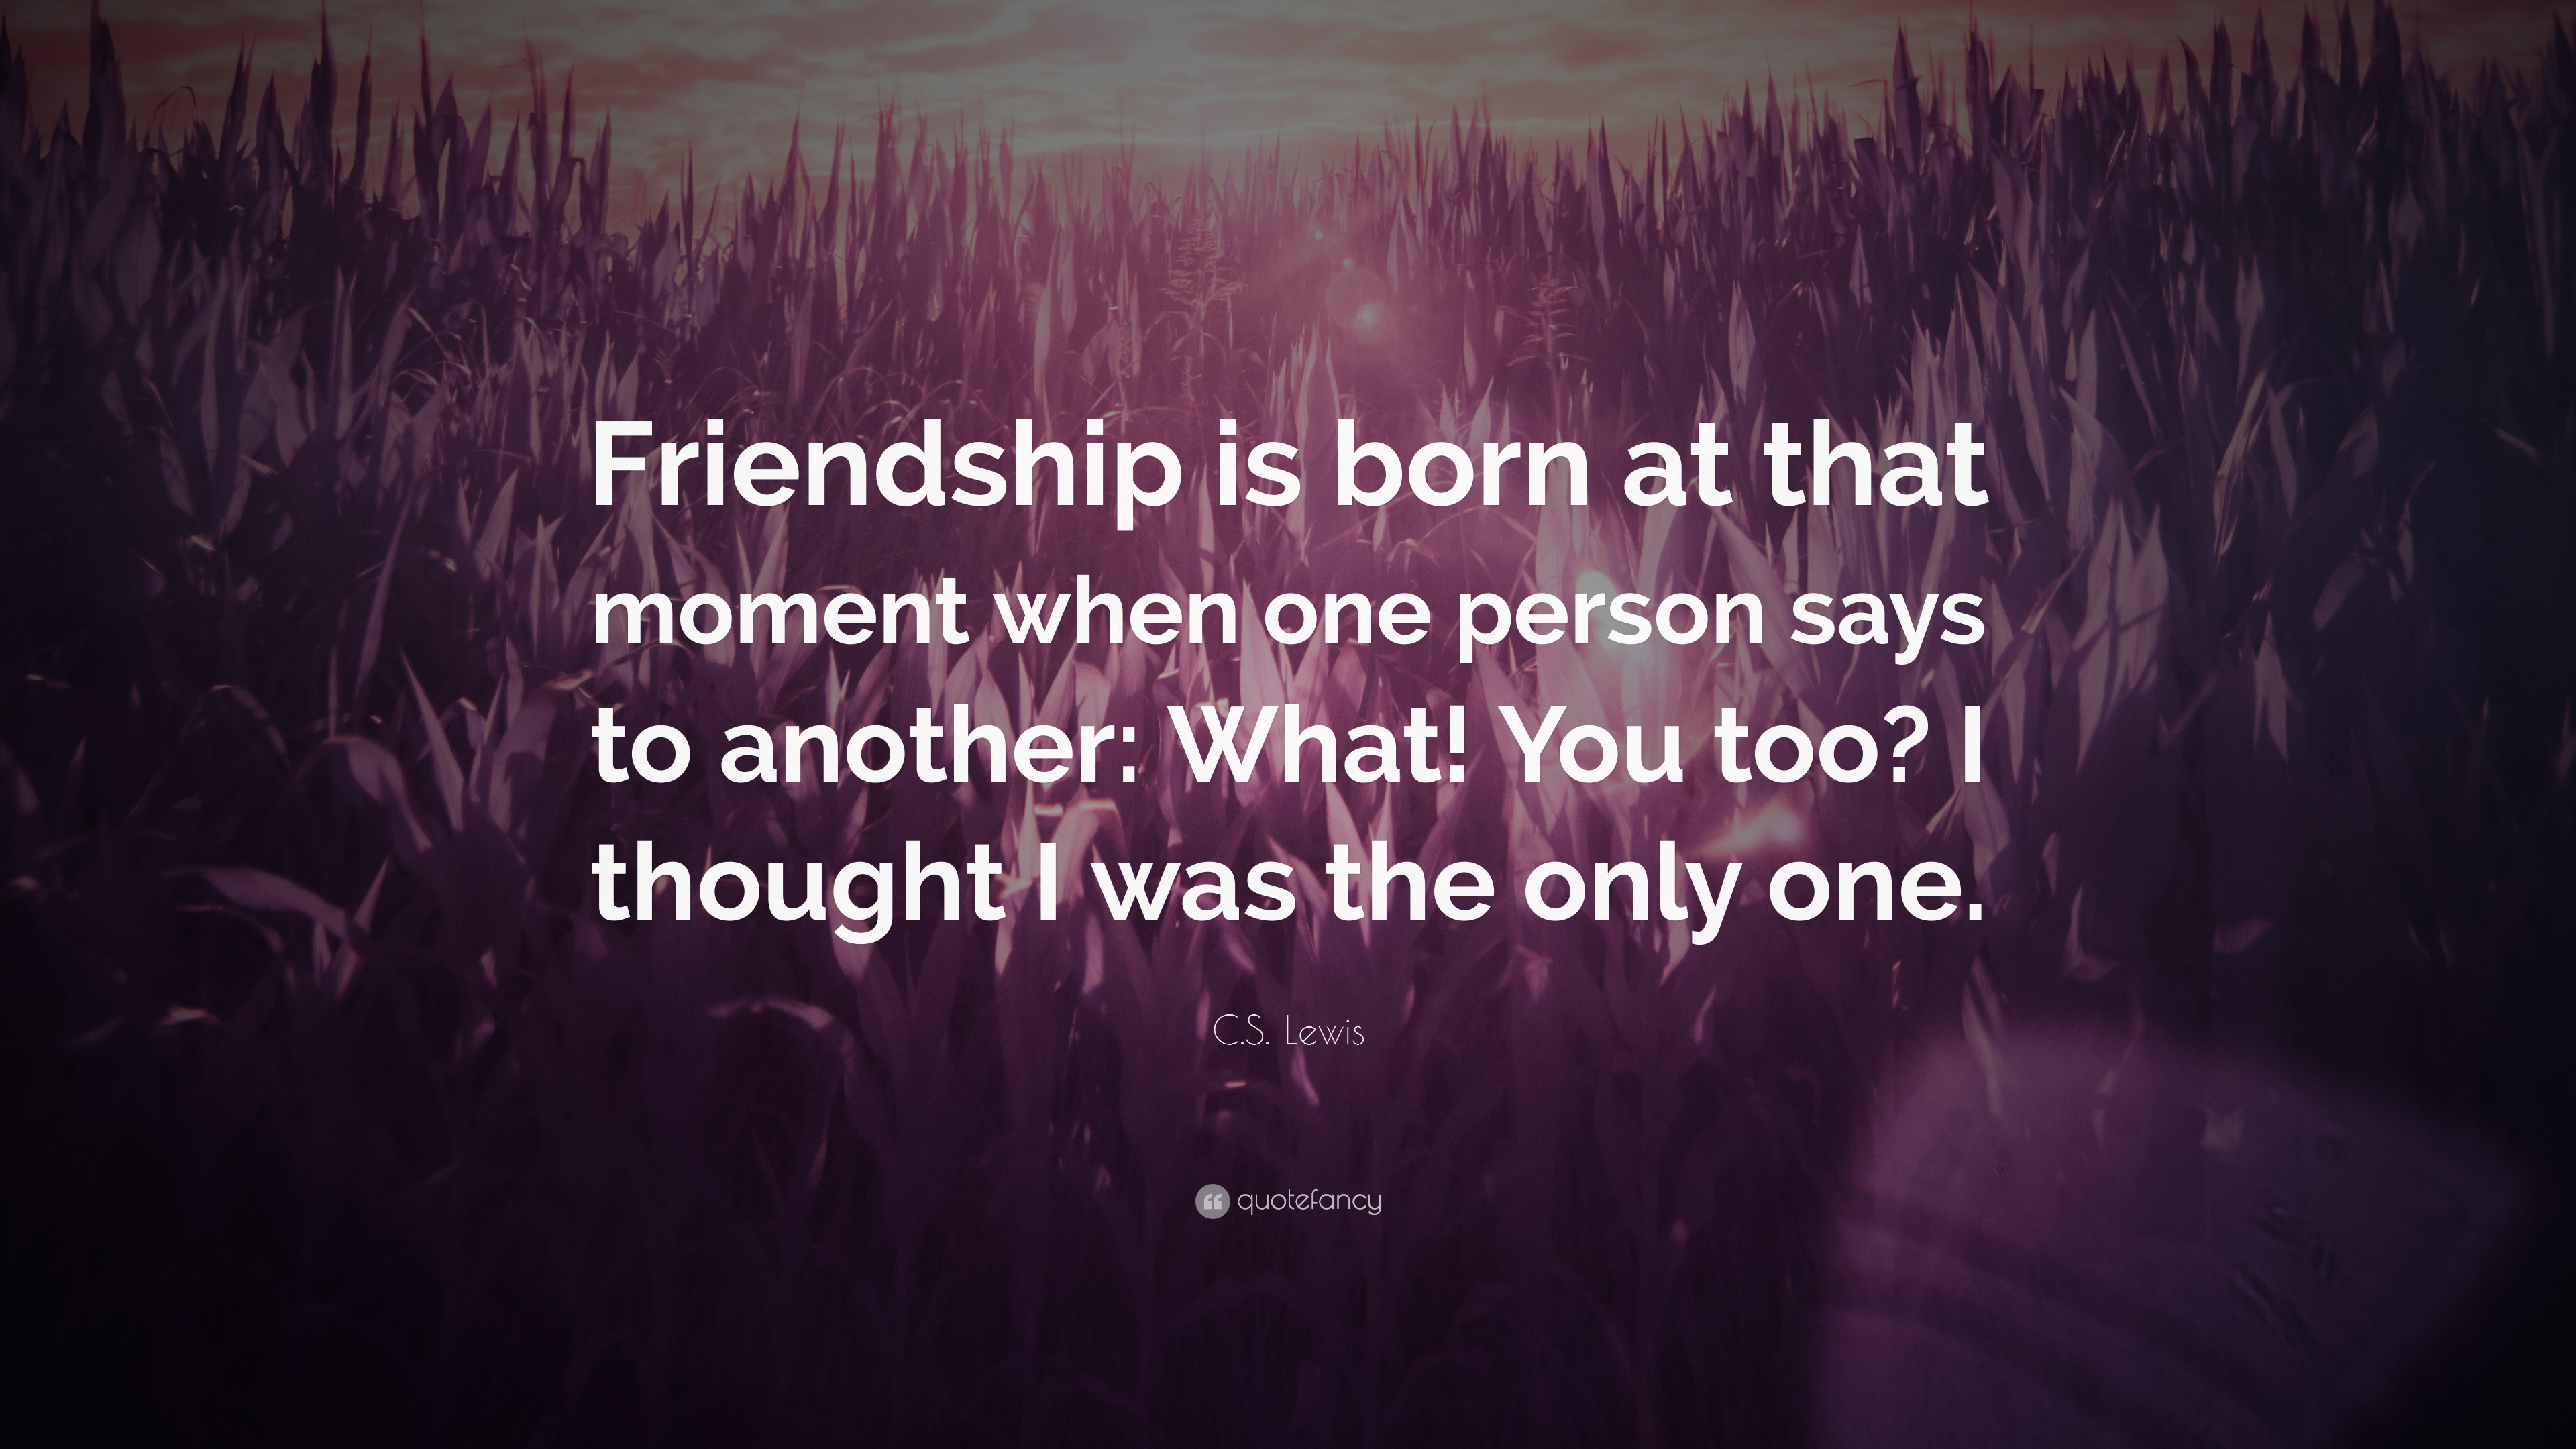 Quotes With Pictures About Friendship Friendship Quotes 21 Wallpapers  Quotefancy